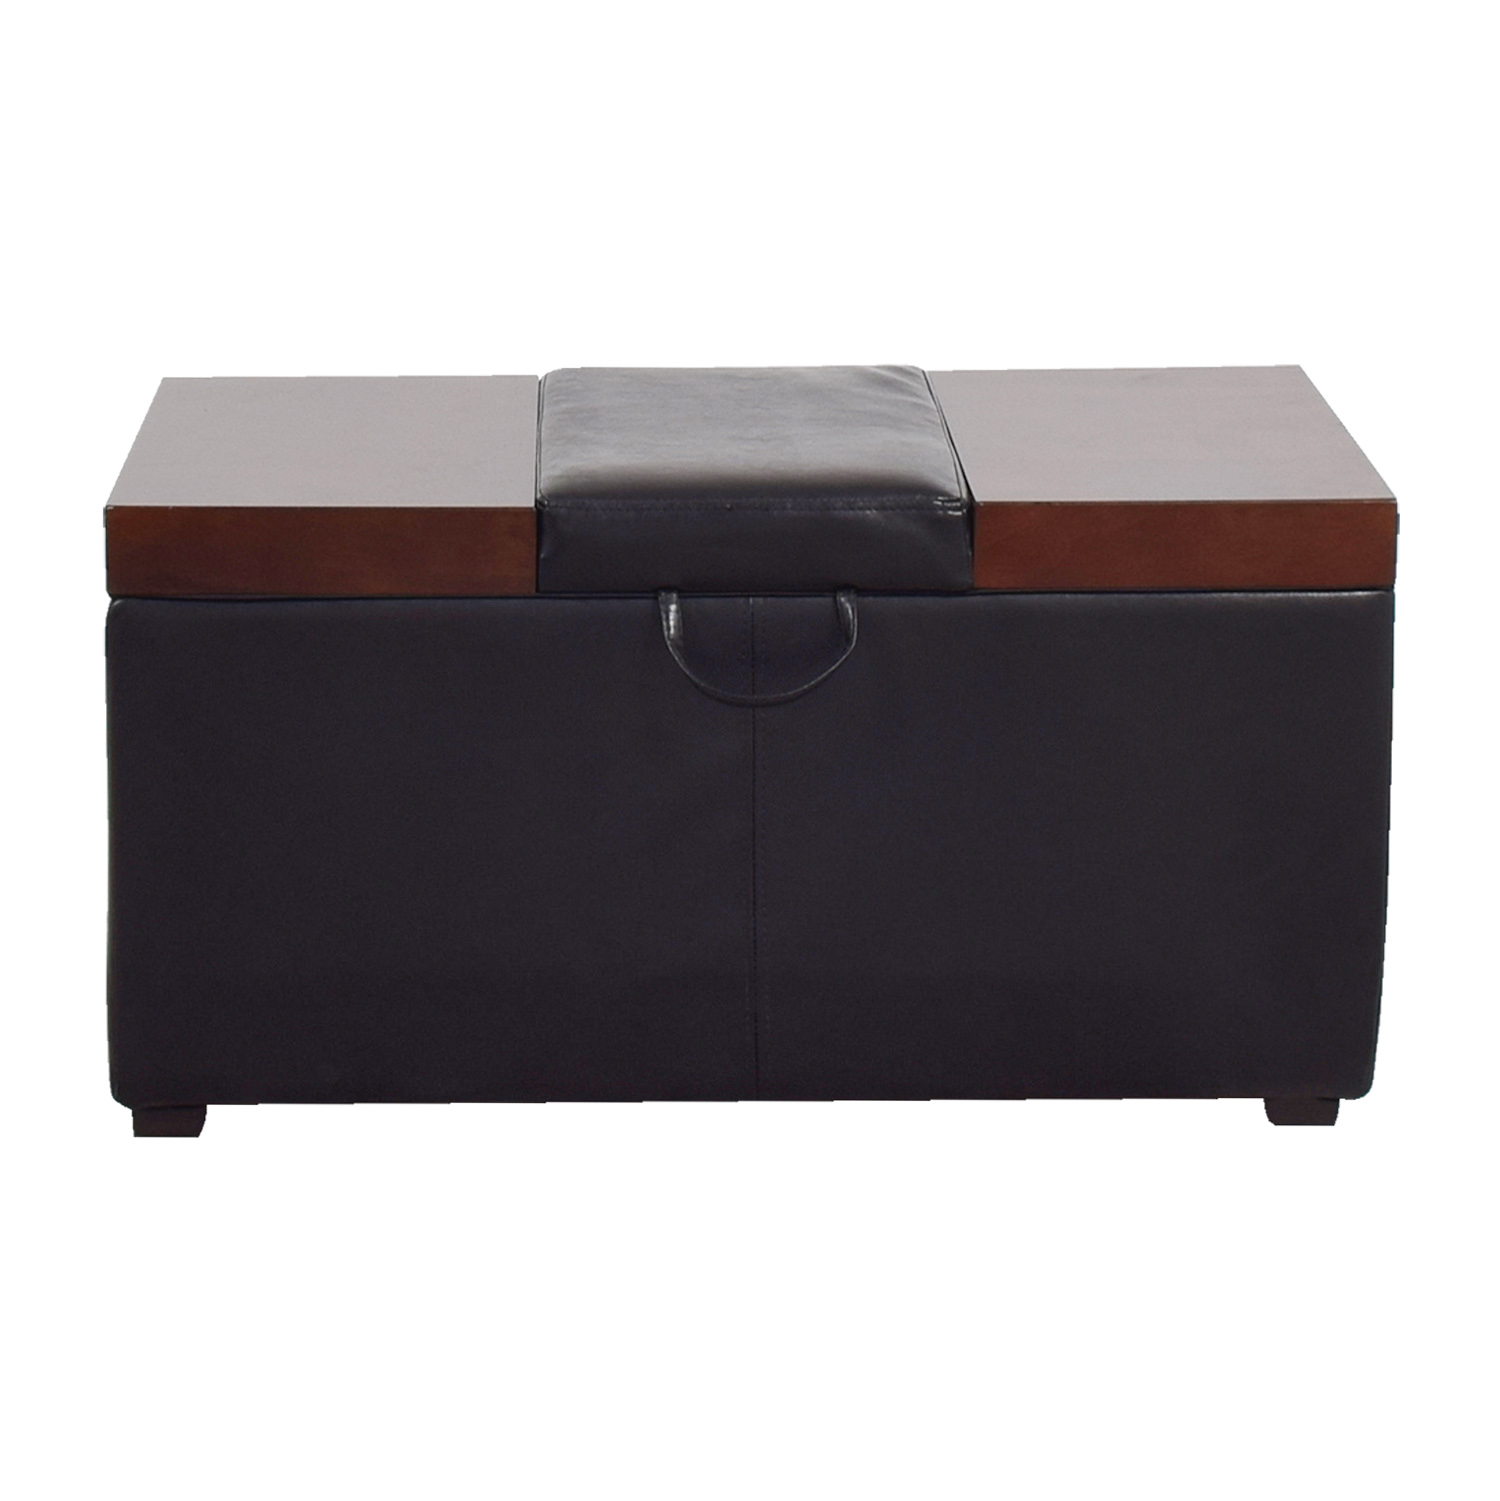 Belham Living Madison Belham Living Madison Lift Top Upholstered Storage  Ottoman Used ...